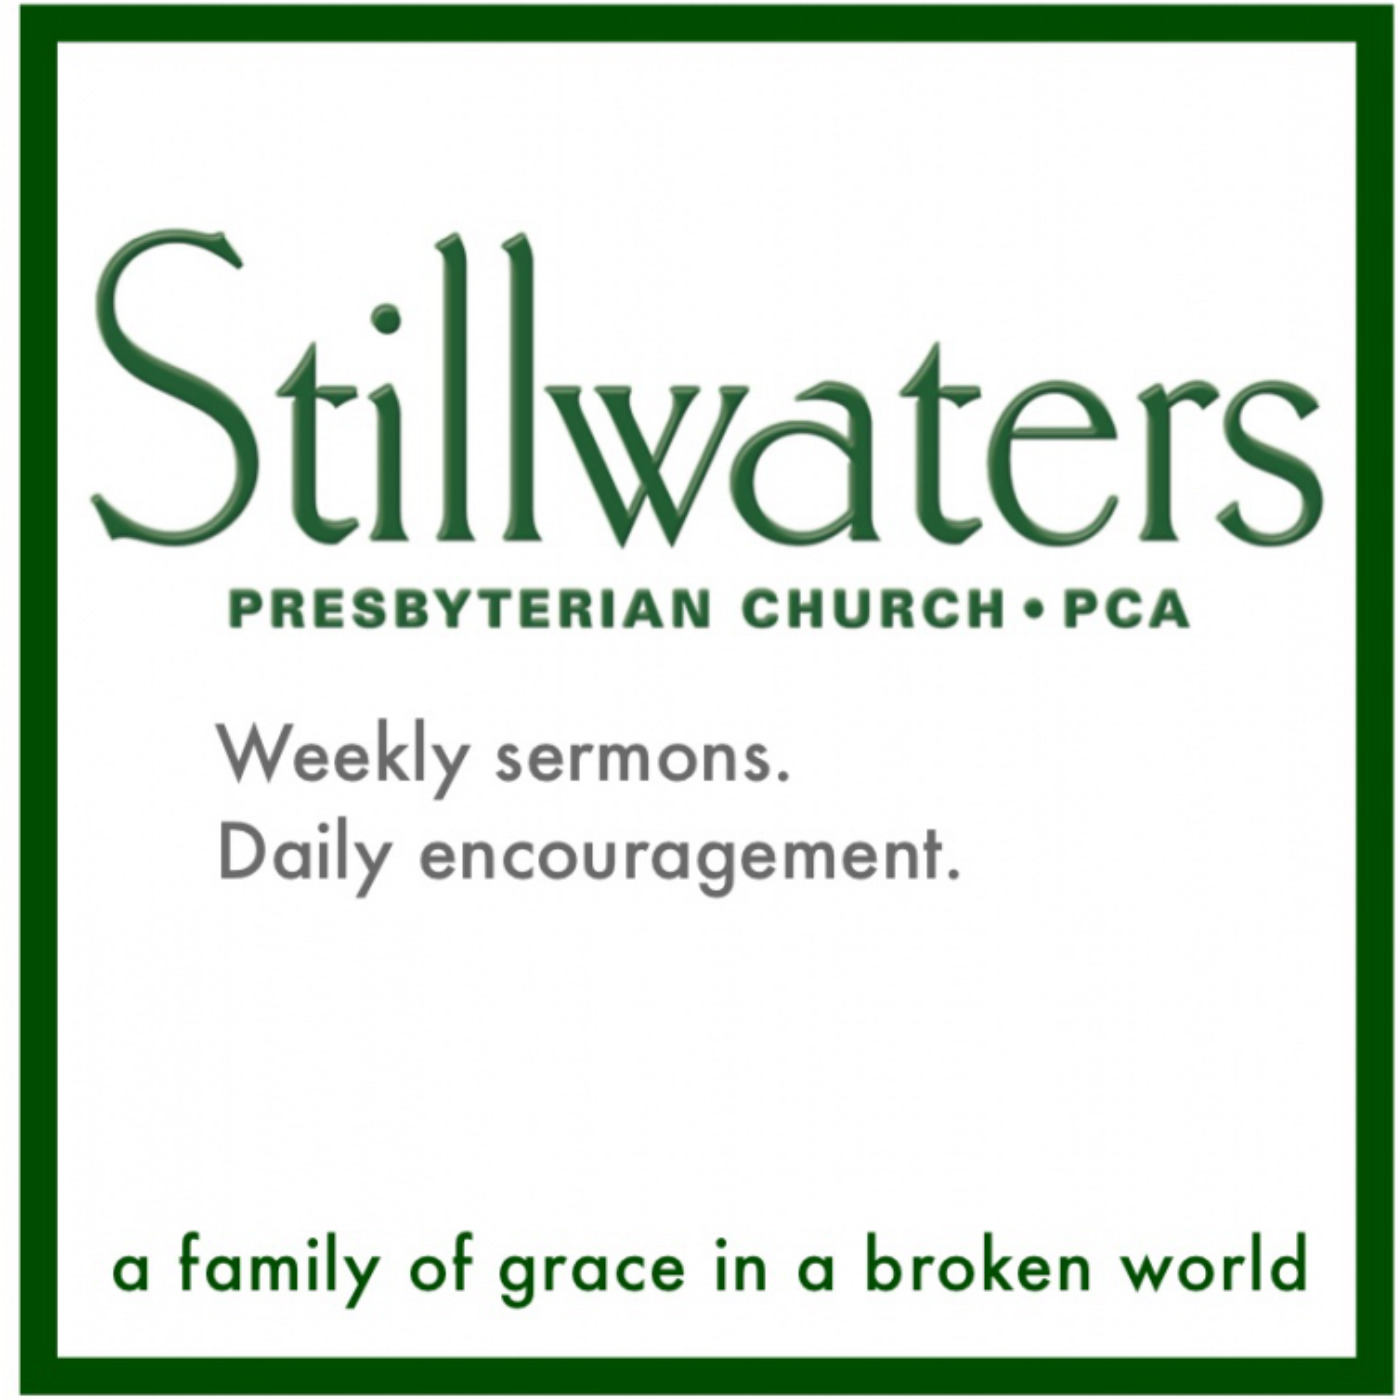 Sermons at Stillwaters Presbyterian Church (PCA)